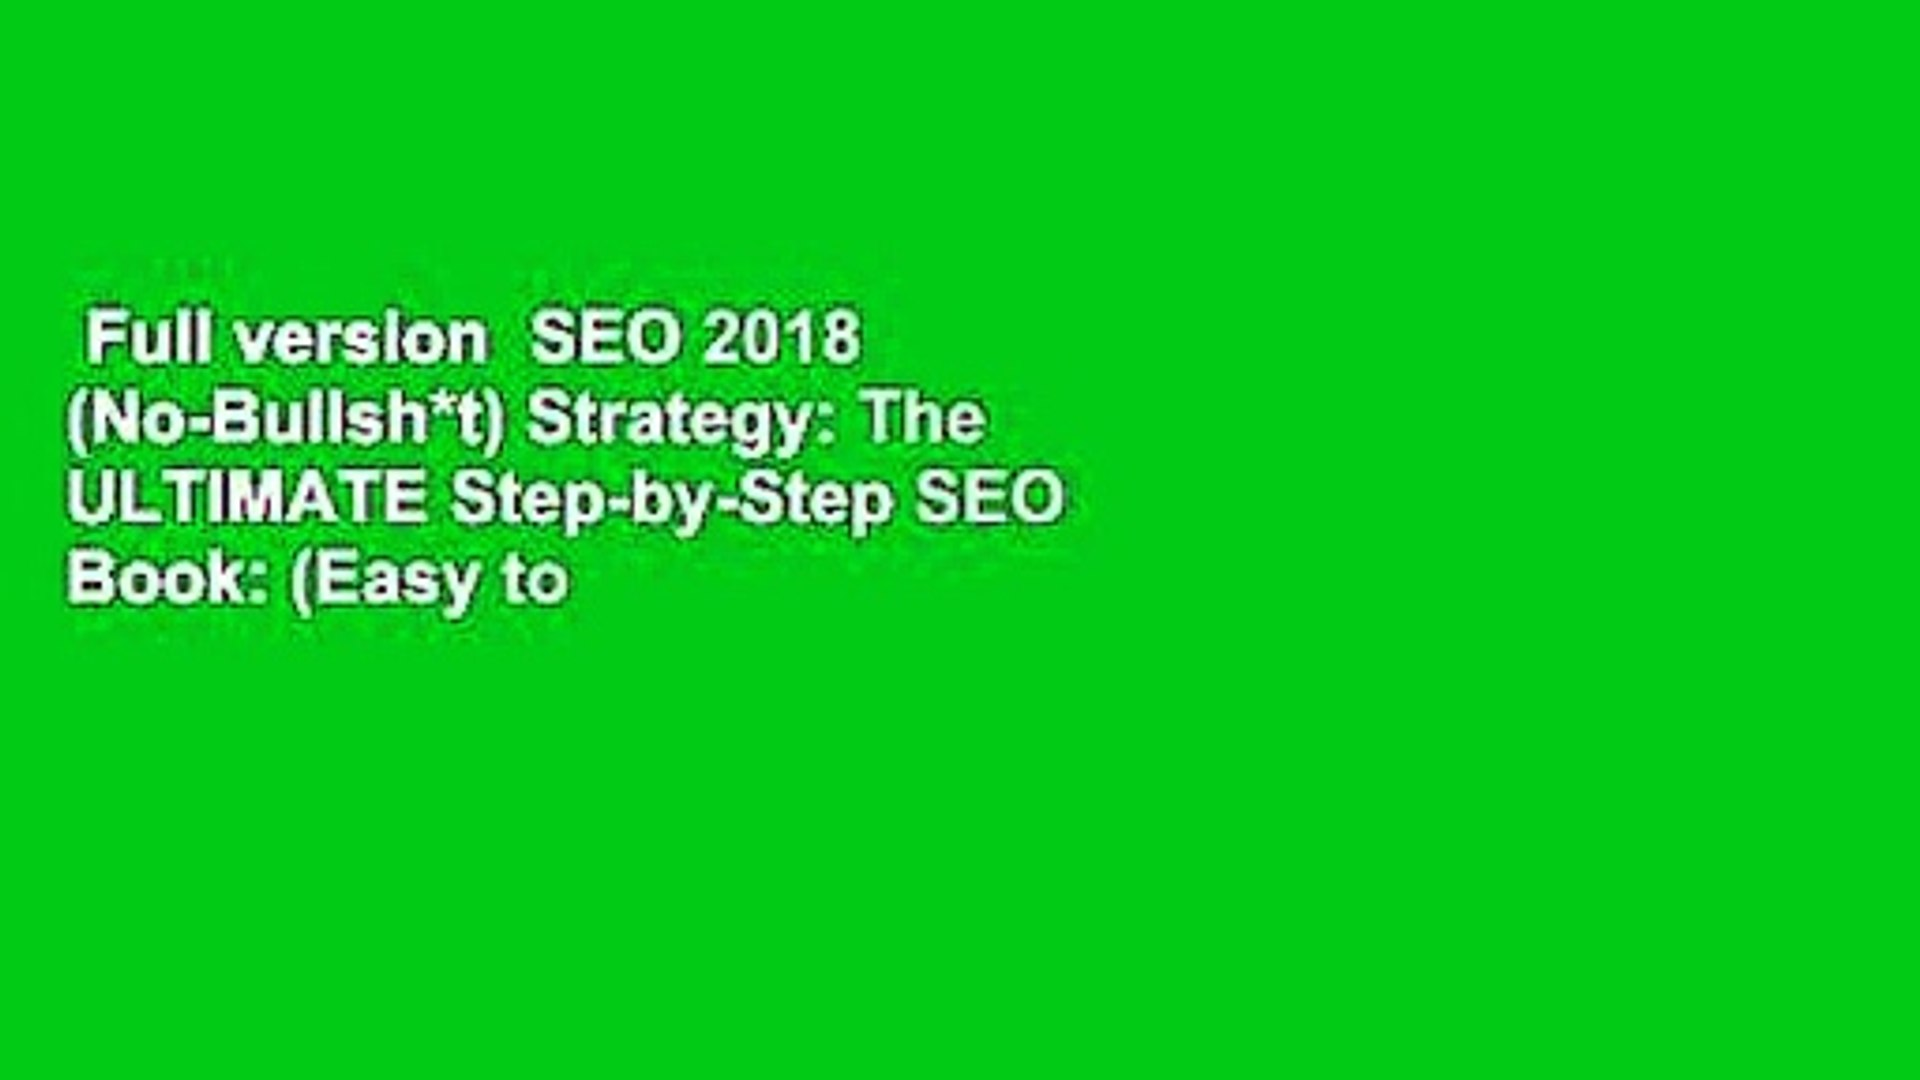 Full version  SEO 2018 (No-Bullsh*t) Strategy: The ULTIMATE Step-by-Step SEO Book: (Easy to